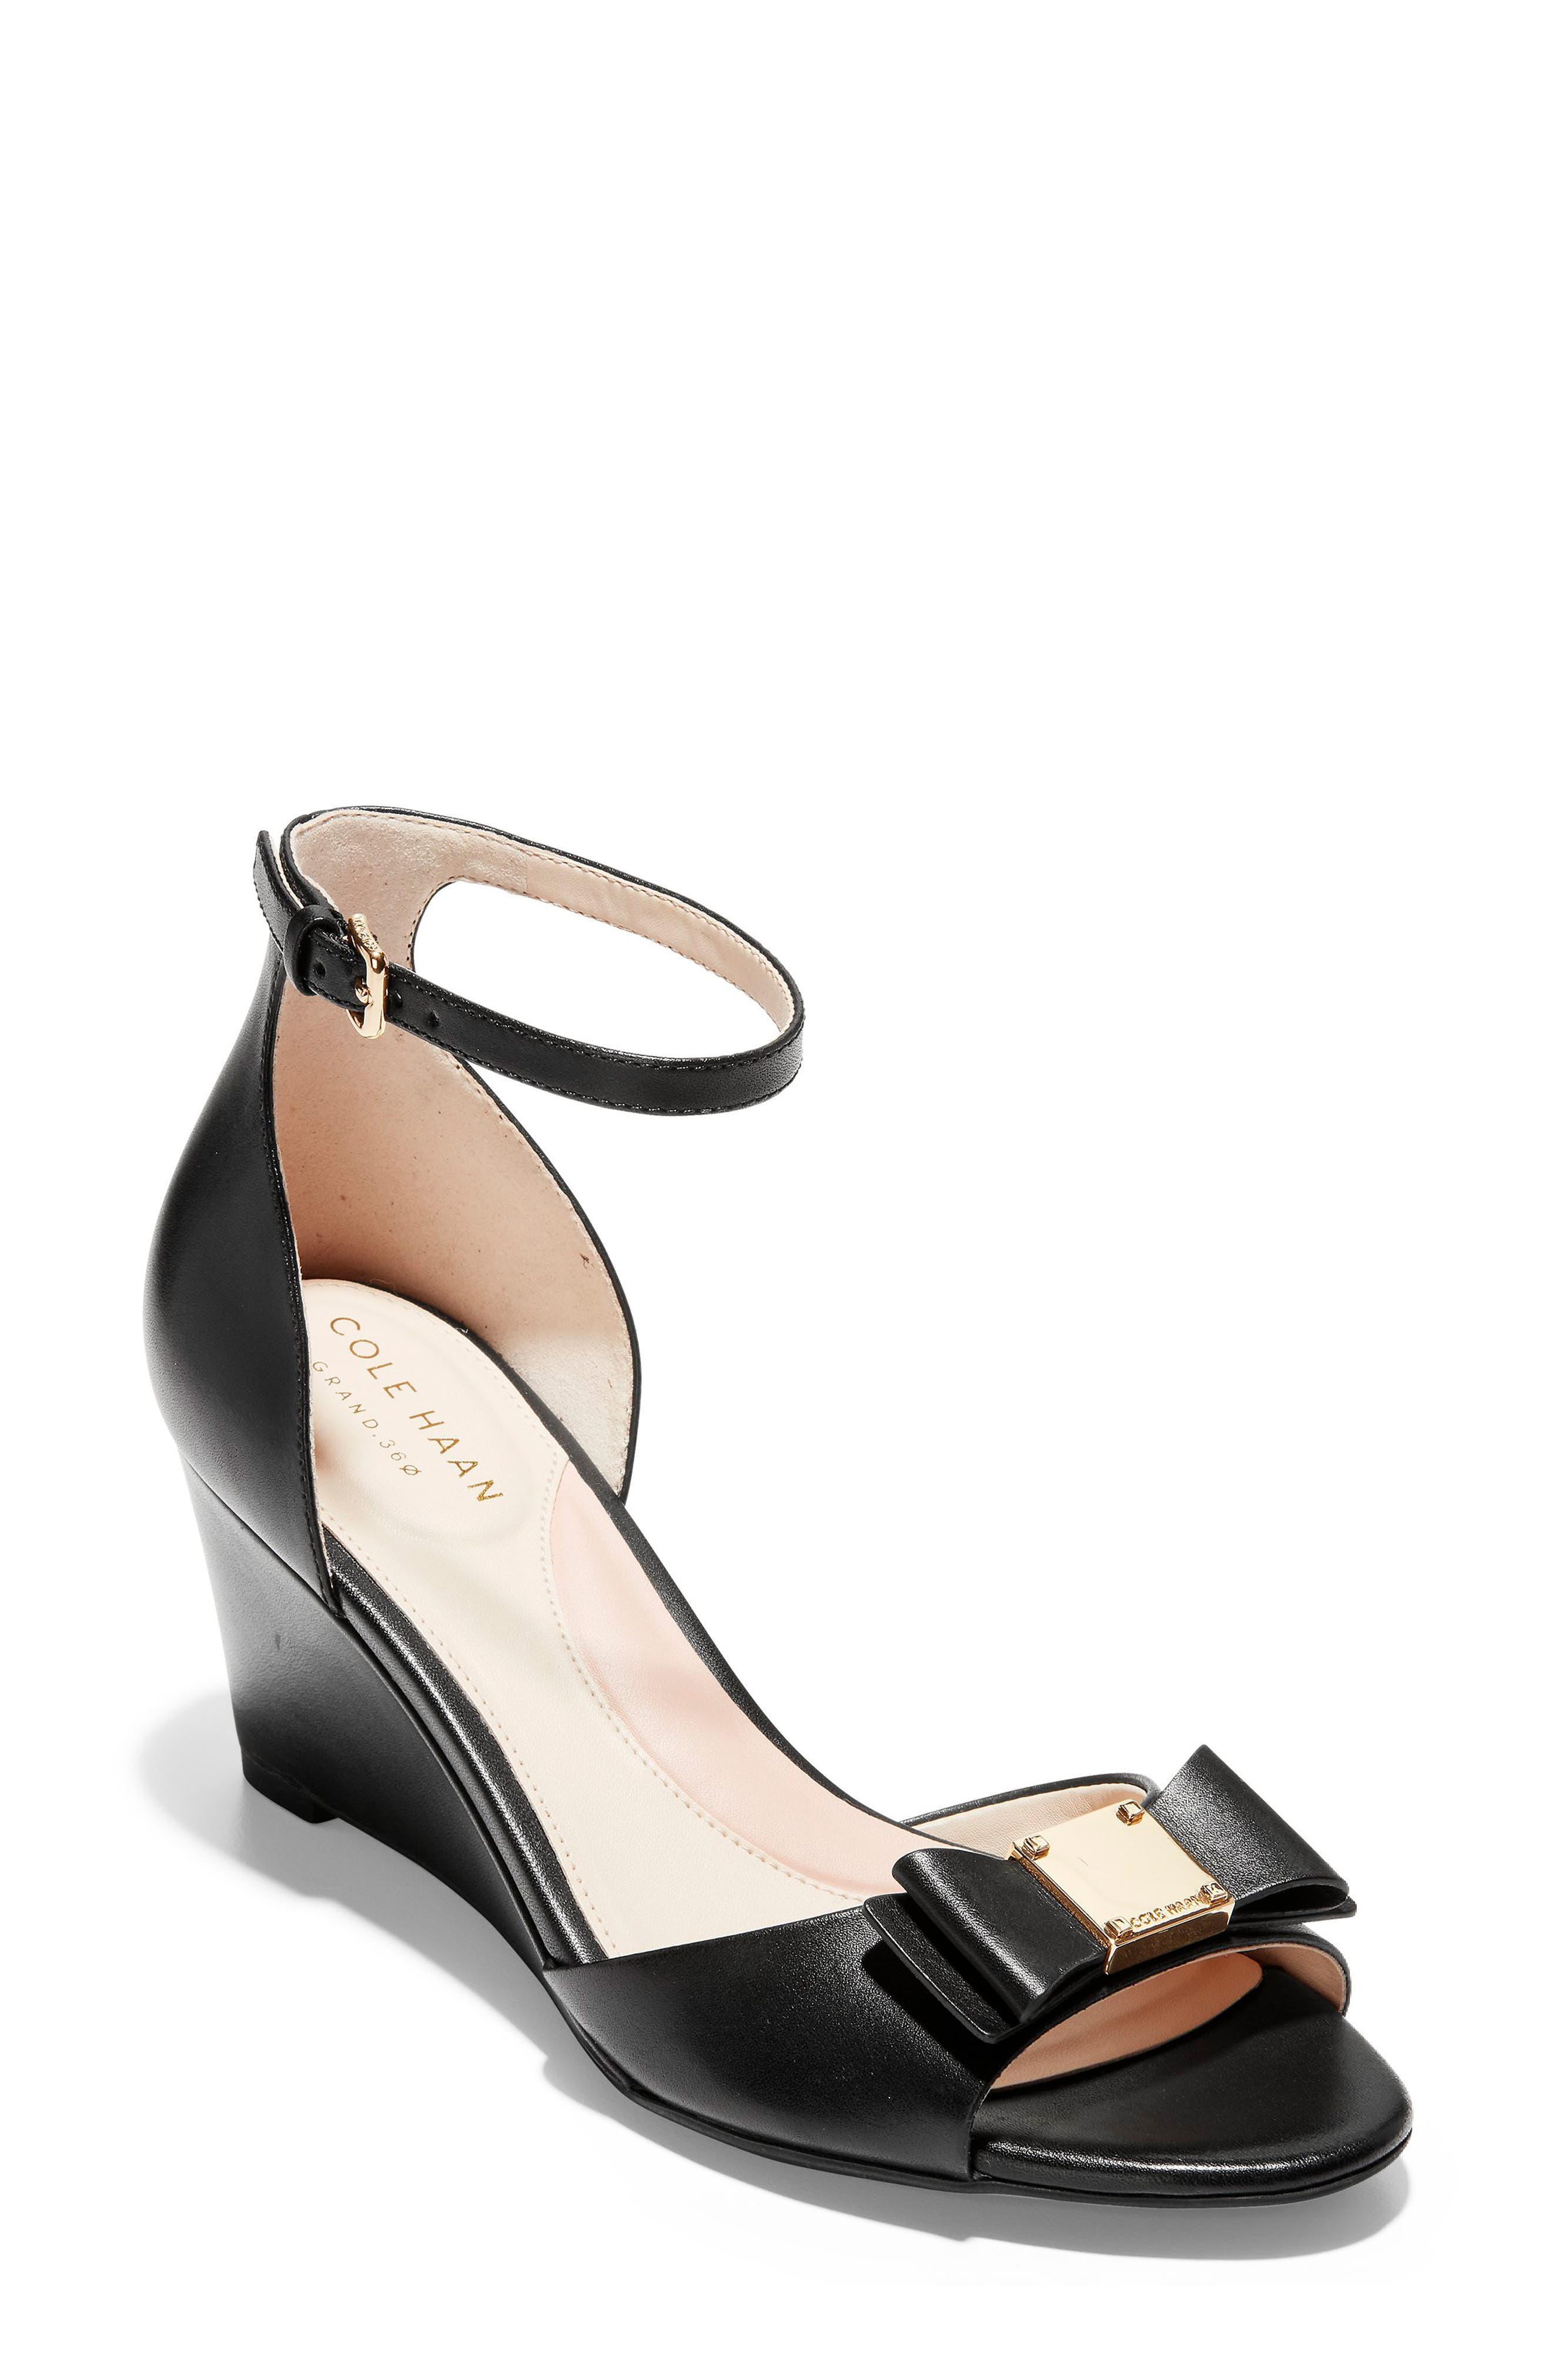 COLE HAAN, Tali Bow Wedge Sandal, Main thumbnail 1, color, BLACK LEATHER